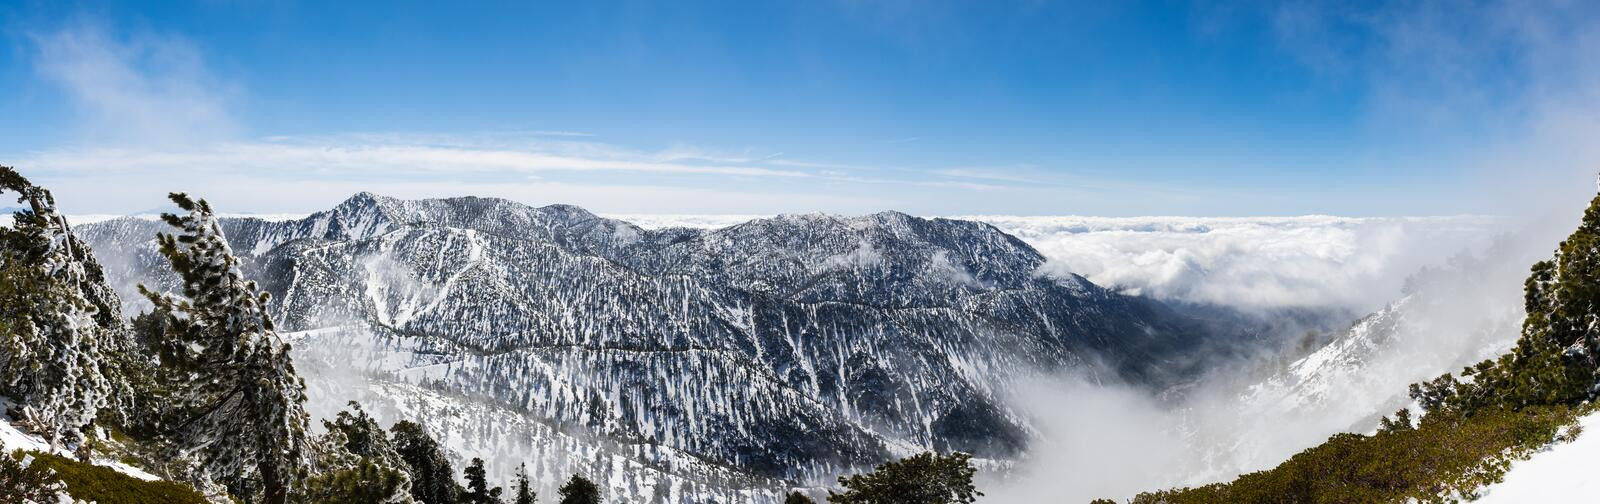 Sunny winter day with fallen snow and a sea of white clouds on the trail to Mt San Antonio (Mt Baldy), Los Angeles county, stock image